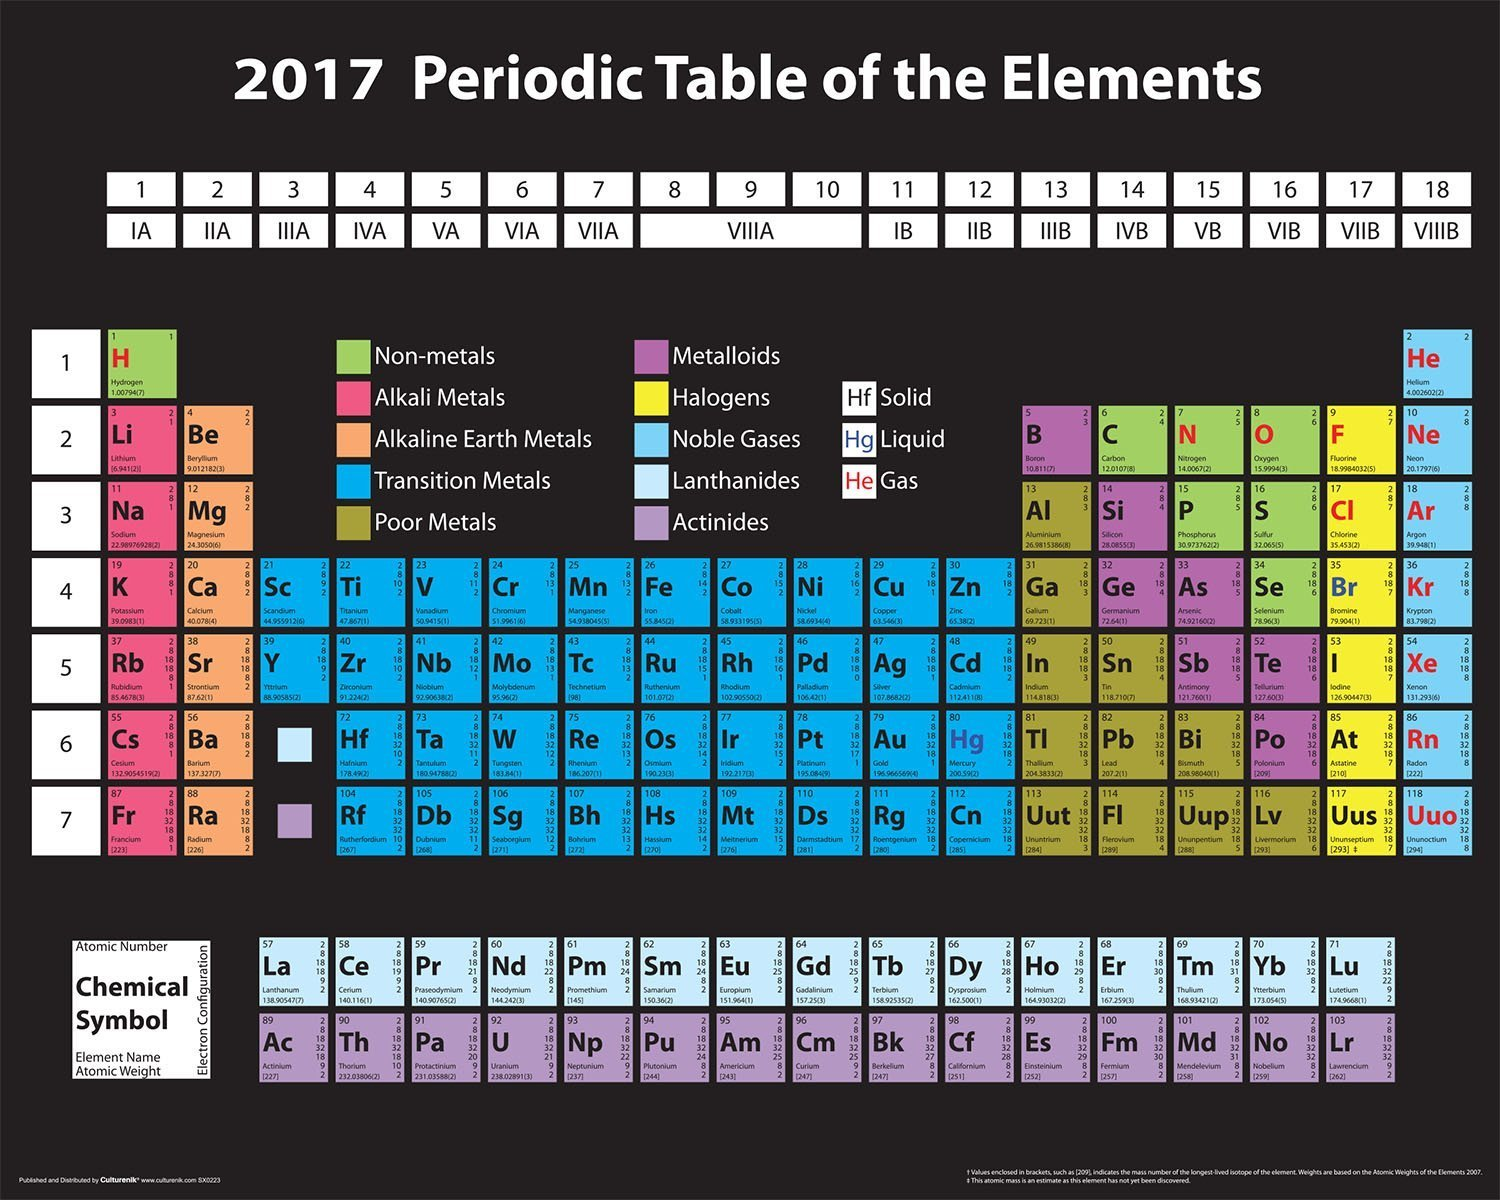 Amazon periodic table of elements 2017 decorative educational amazon periodic table of elements 2017 decorative educational science classroom print unframed 16x20 poster posters prints gamestrikefo Images